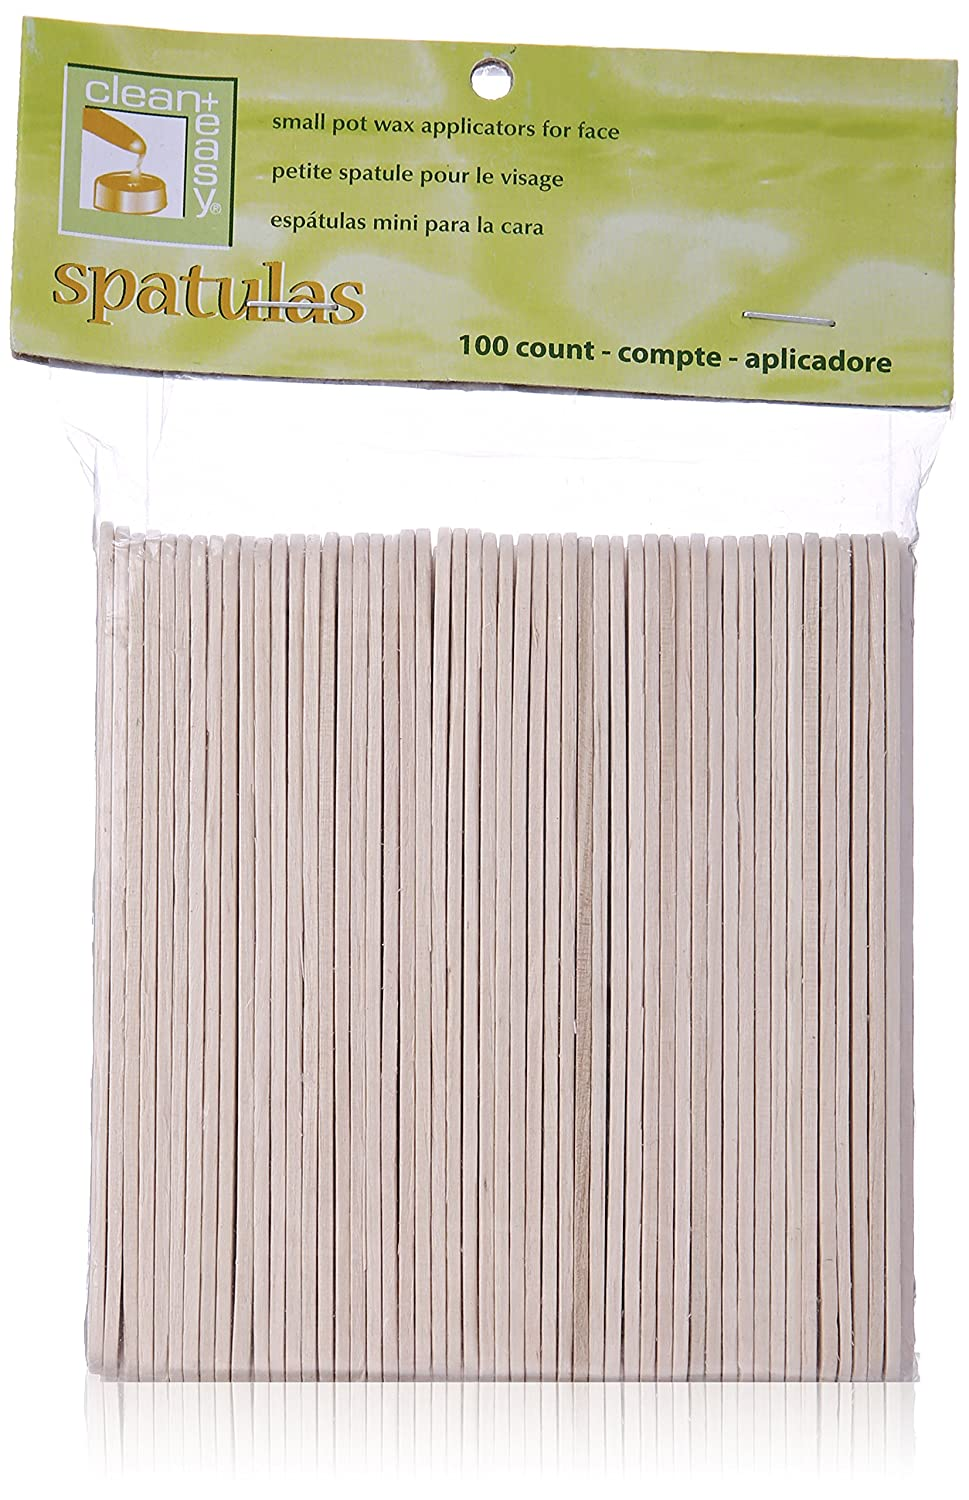 Clean Plus Easy Face Wood Applicator Spatula, Small, 100 Count AB-41102